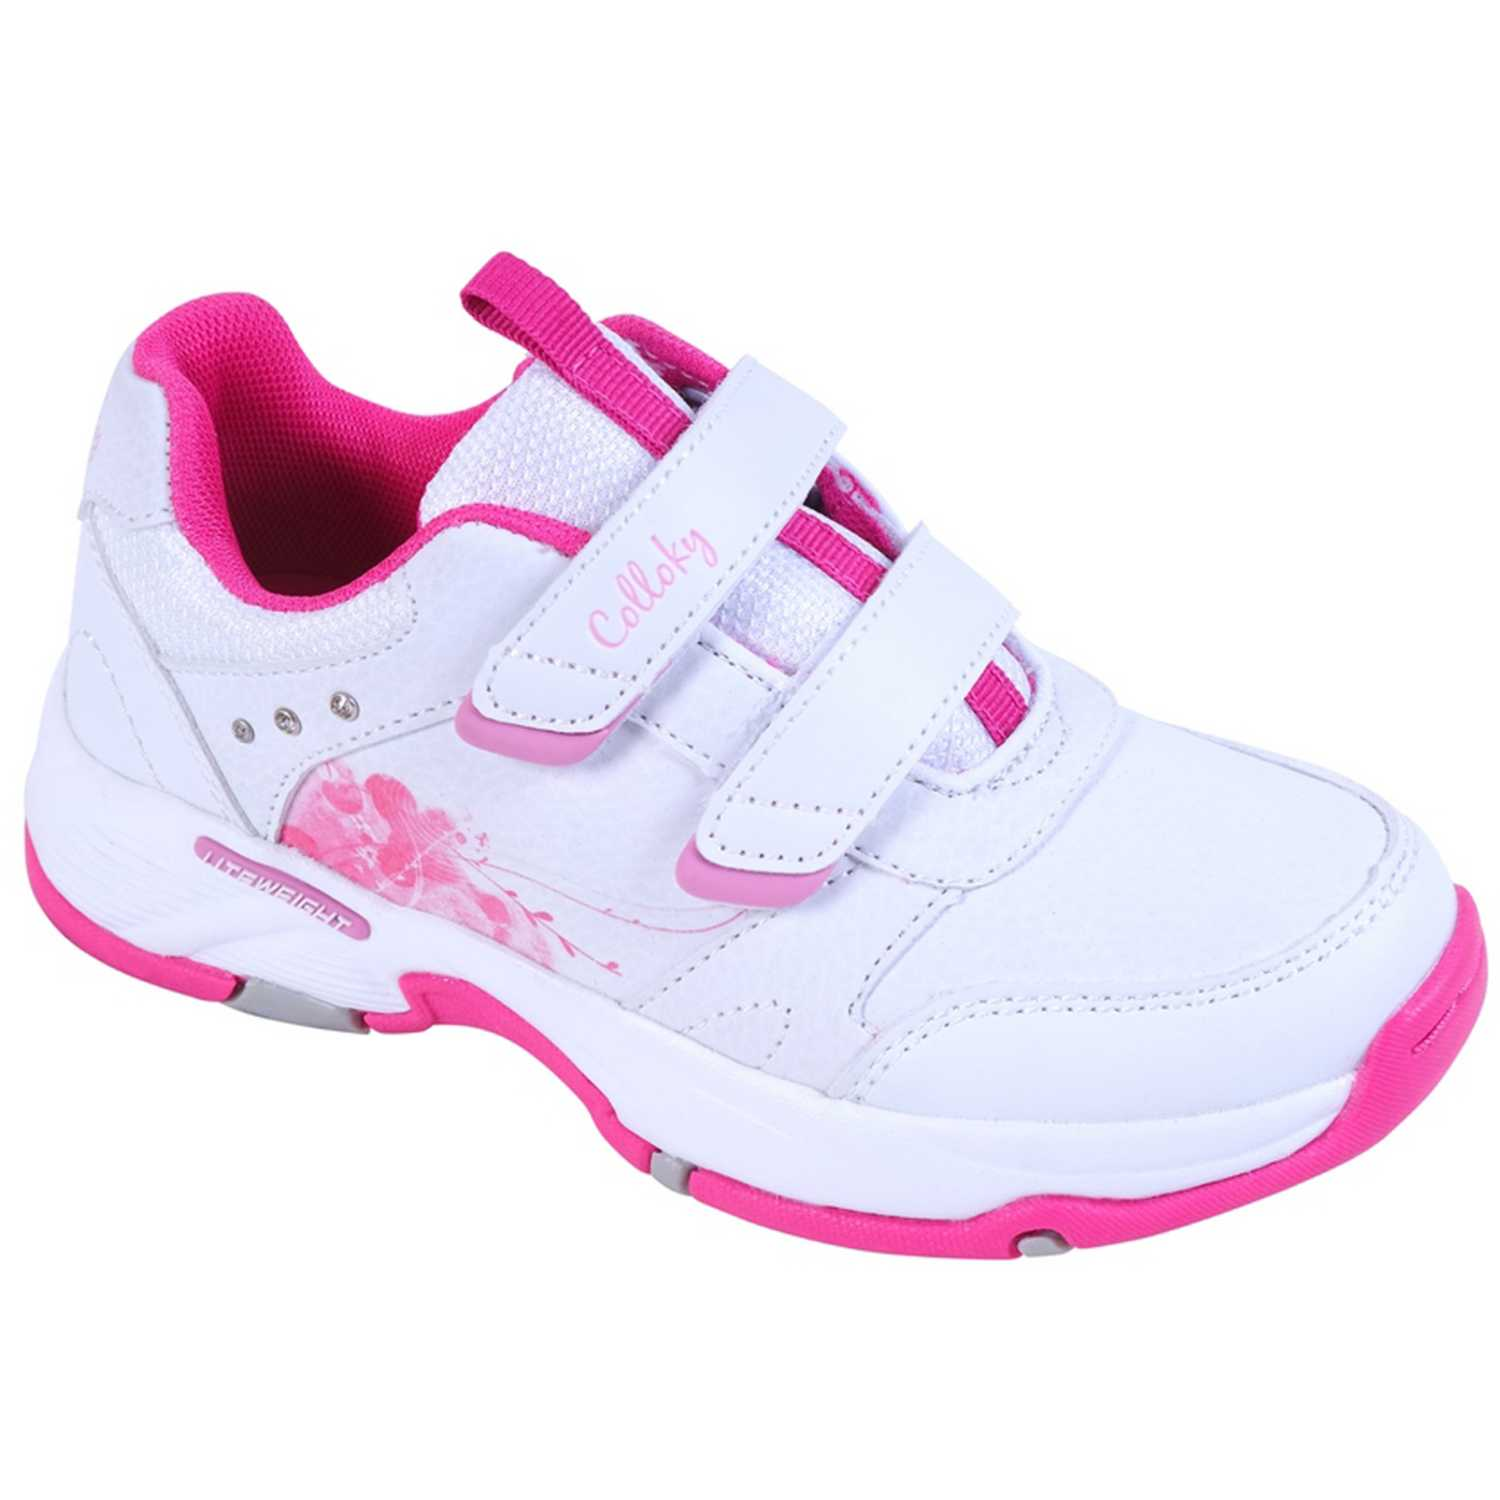 Colloky 5888-10-s1 Blanco / rosado Walking